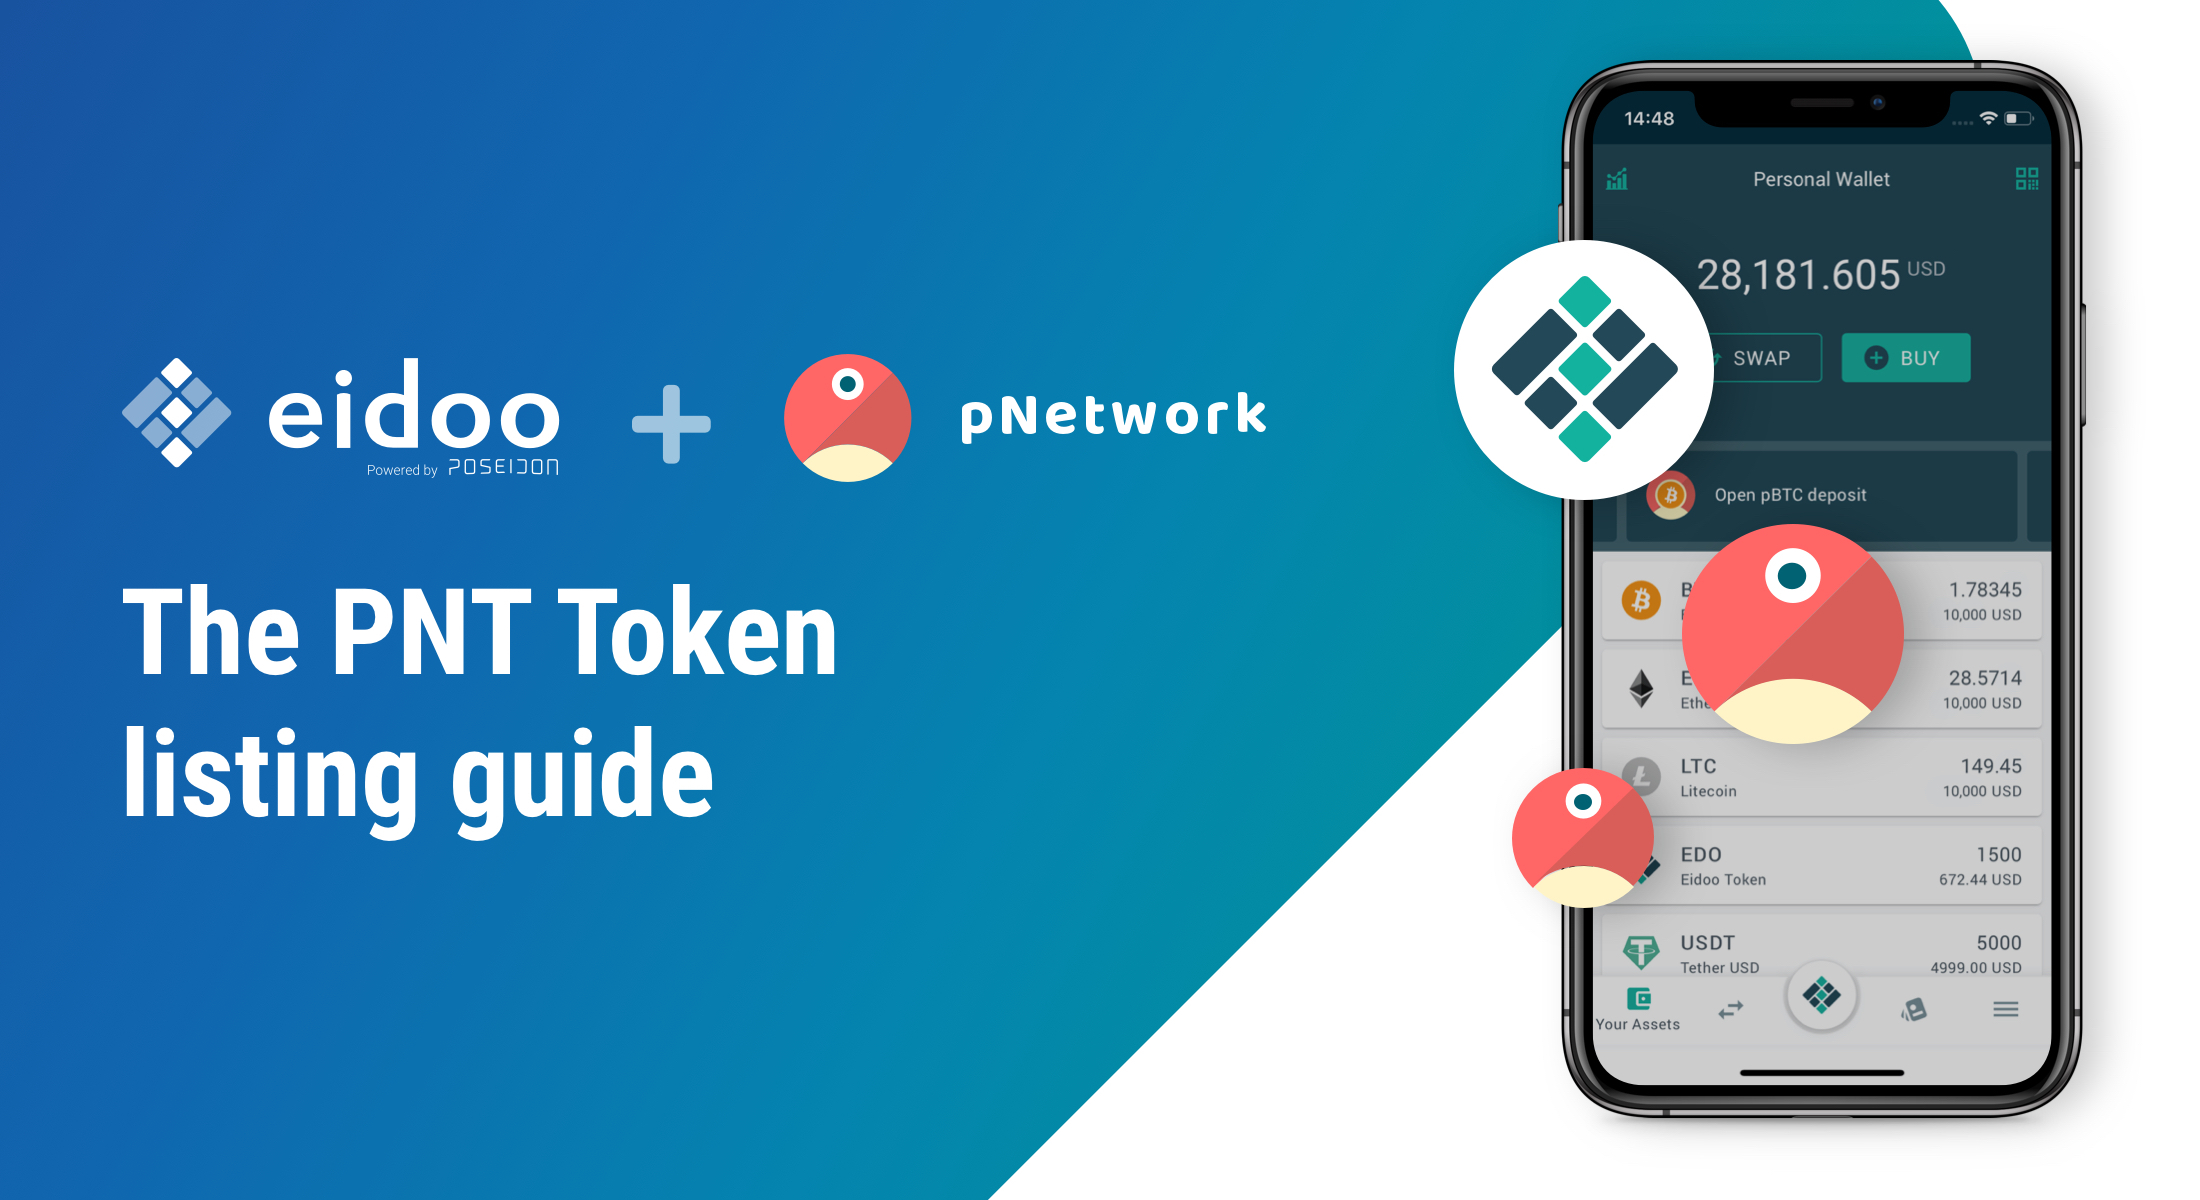 The PNT token listing guide